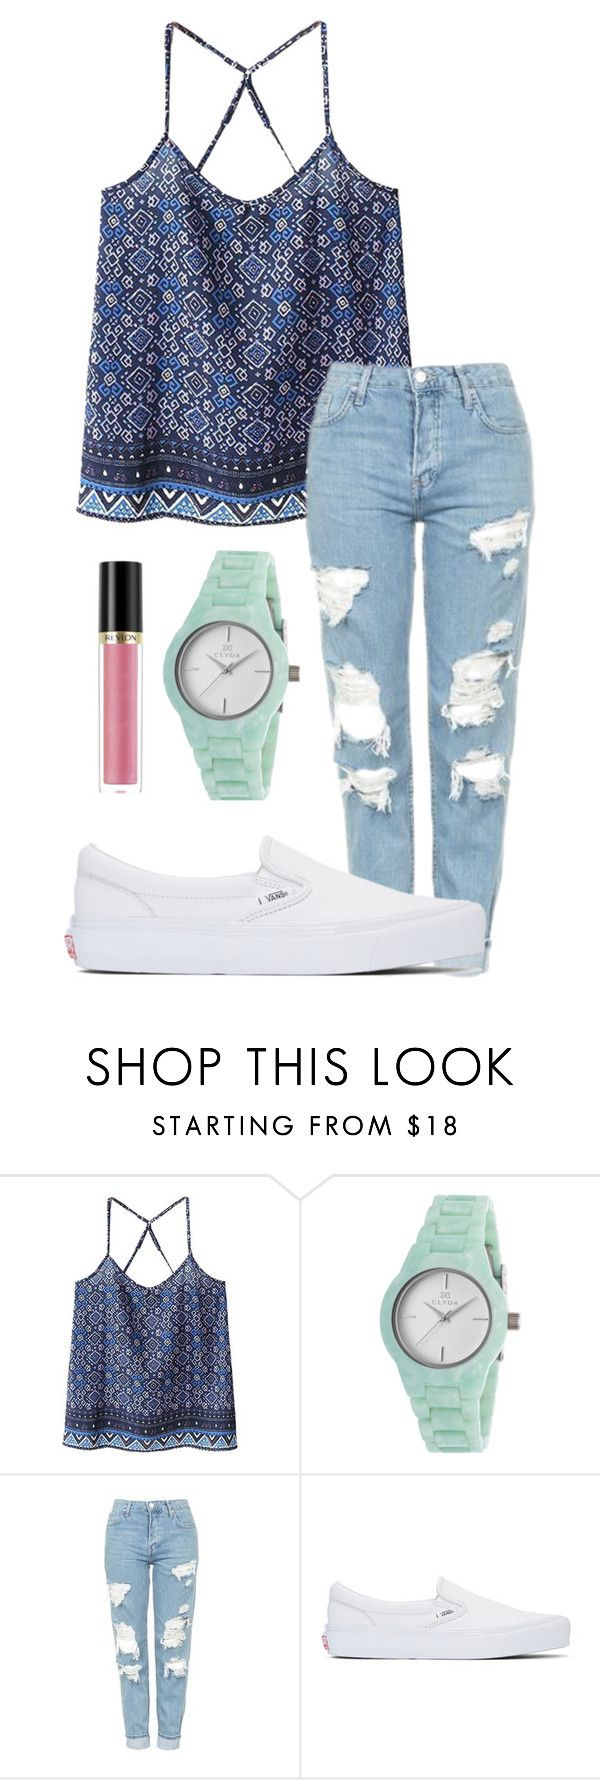 """""""Spring."""" by annayalee-gerber ❤ liked on Polyvore featuring WithChic, Clyda, Topshop, Vans and Revlon"""